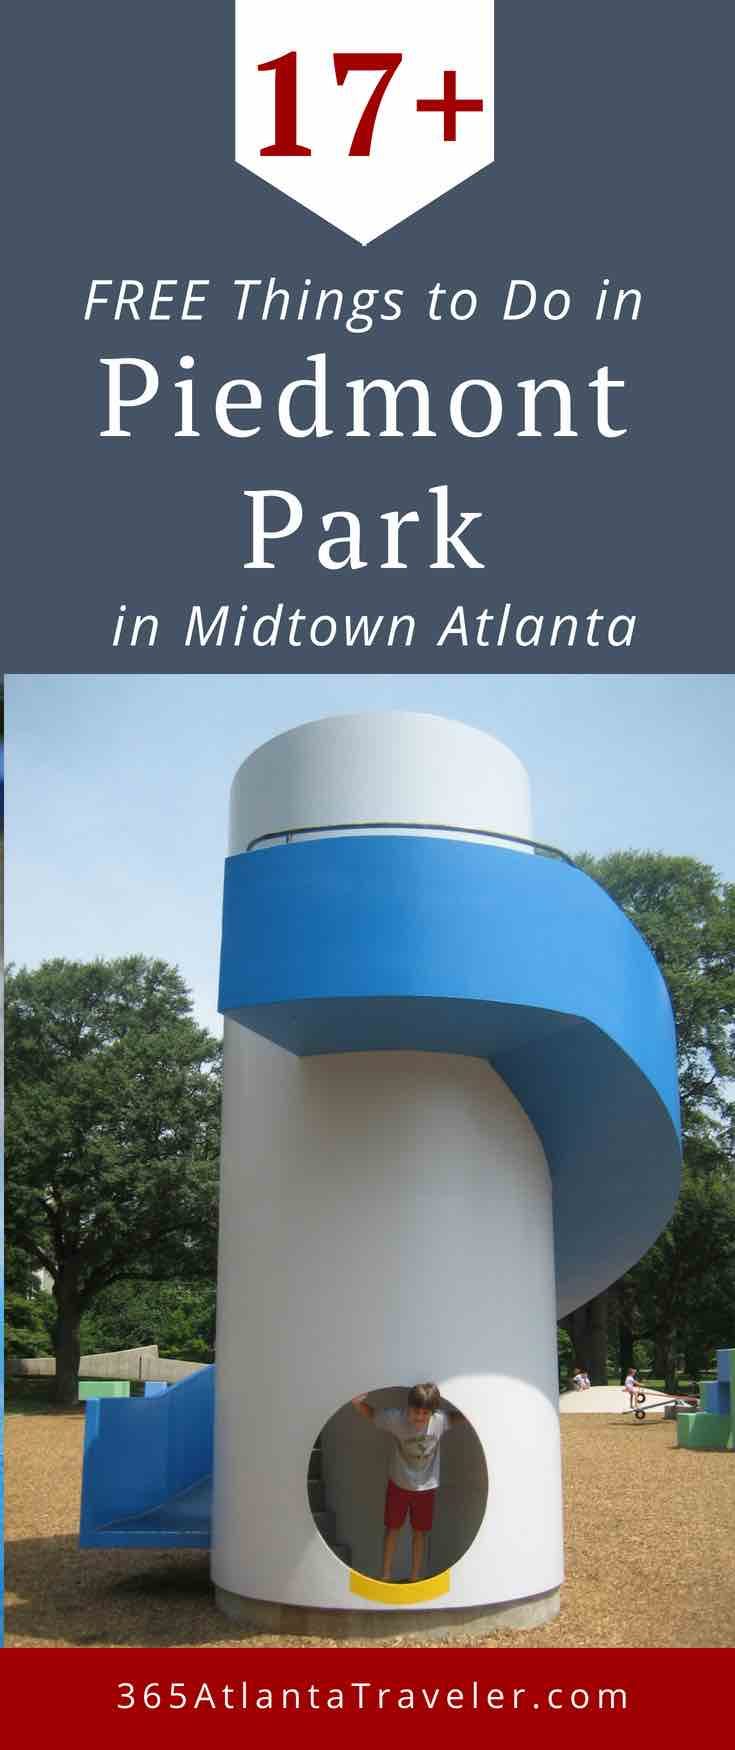 Piedmont Park is one of Atlanta's most beloved landmarks. Here are 17 FREE Ways You'll Love To Have A Fun At Piedmont Park - from festivals and bocce ball to tours and scavenger hunts.